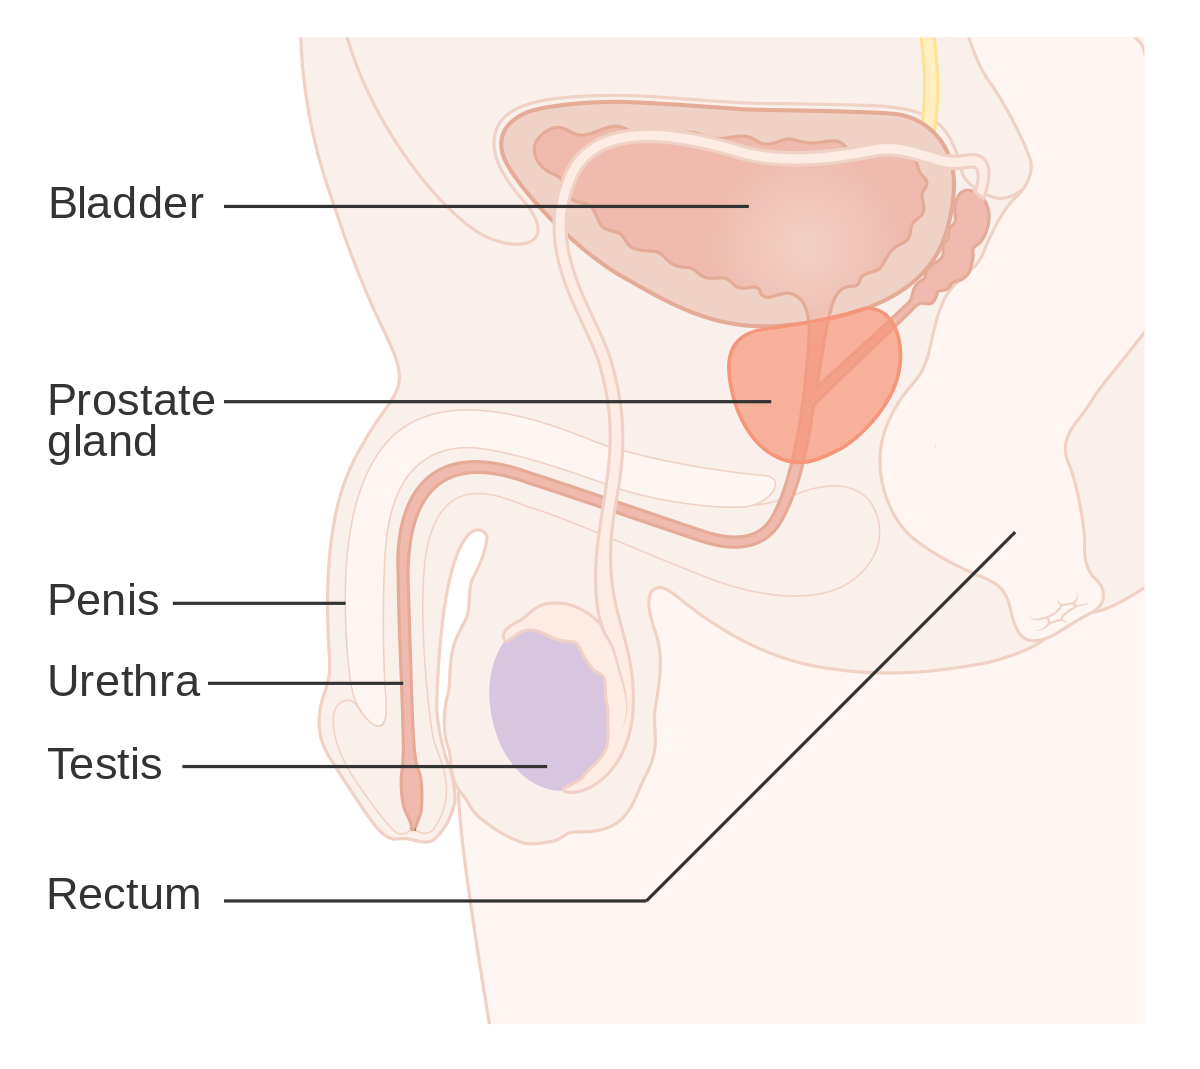 cancer hormonal prostata hpv treatment for mouth